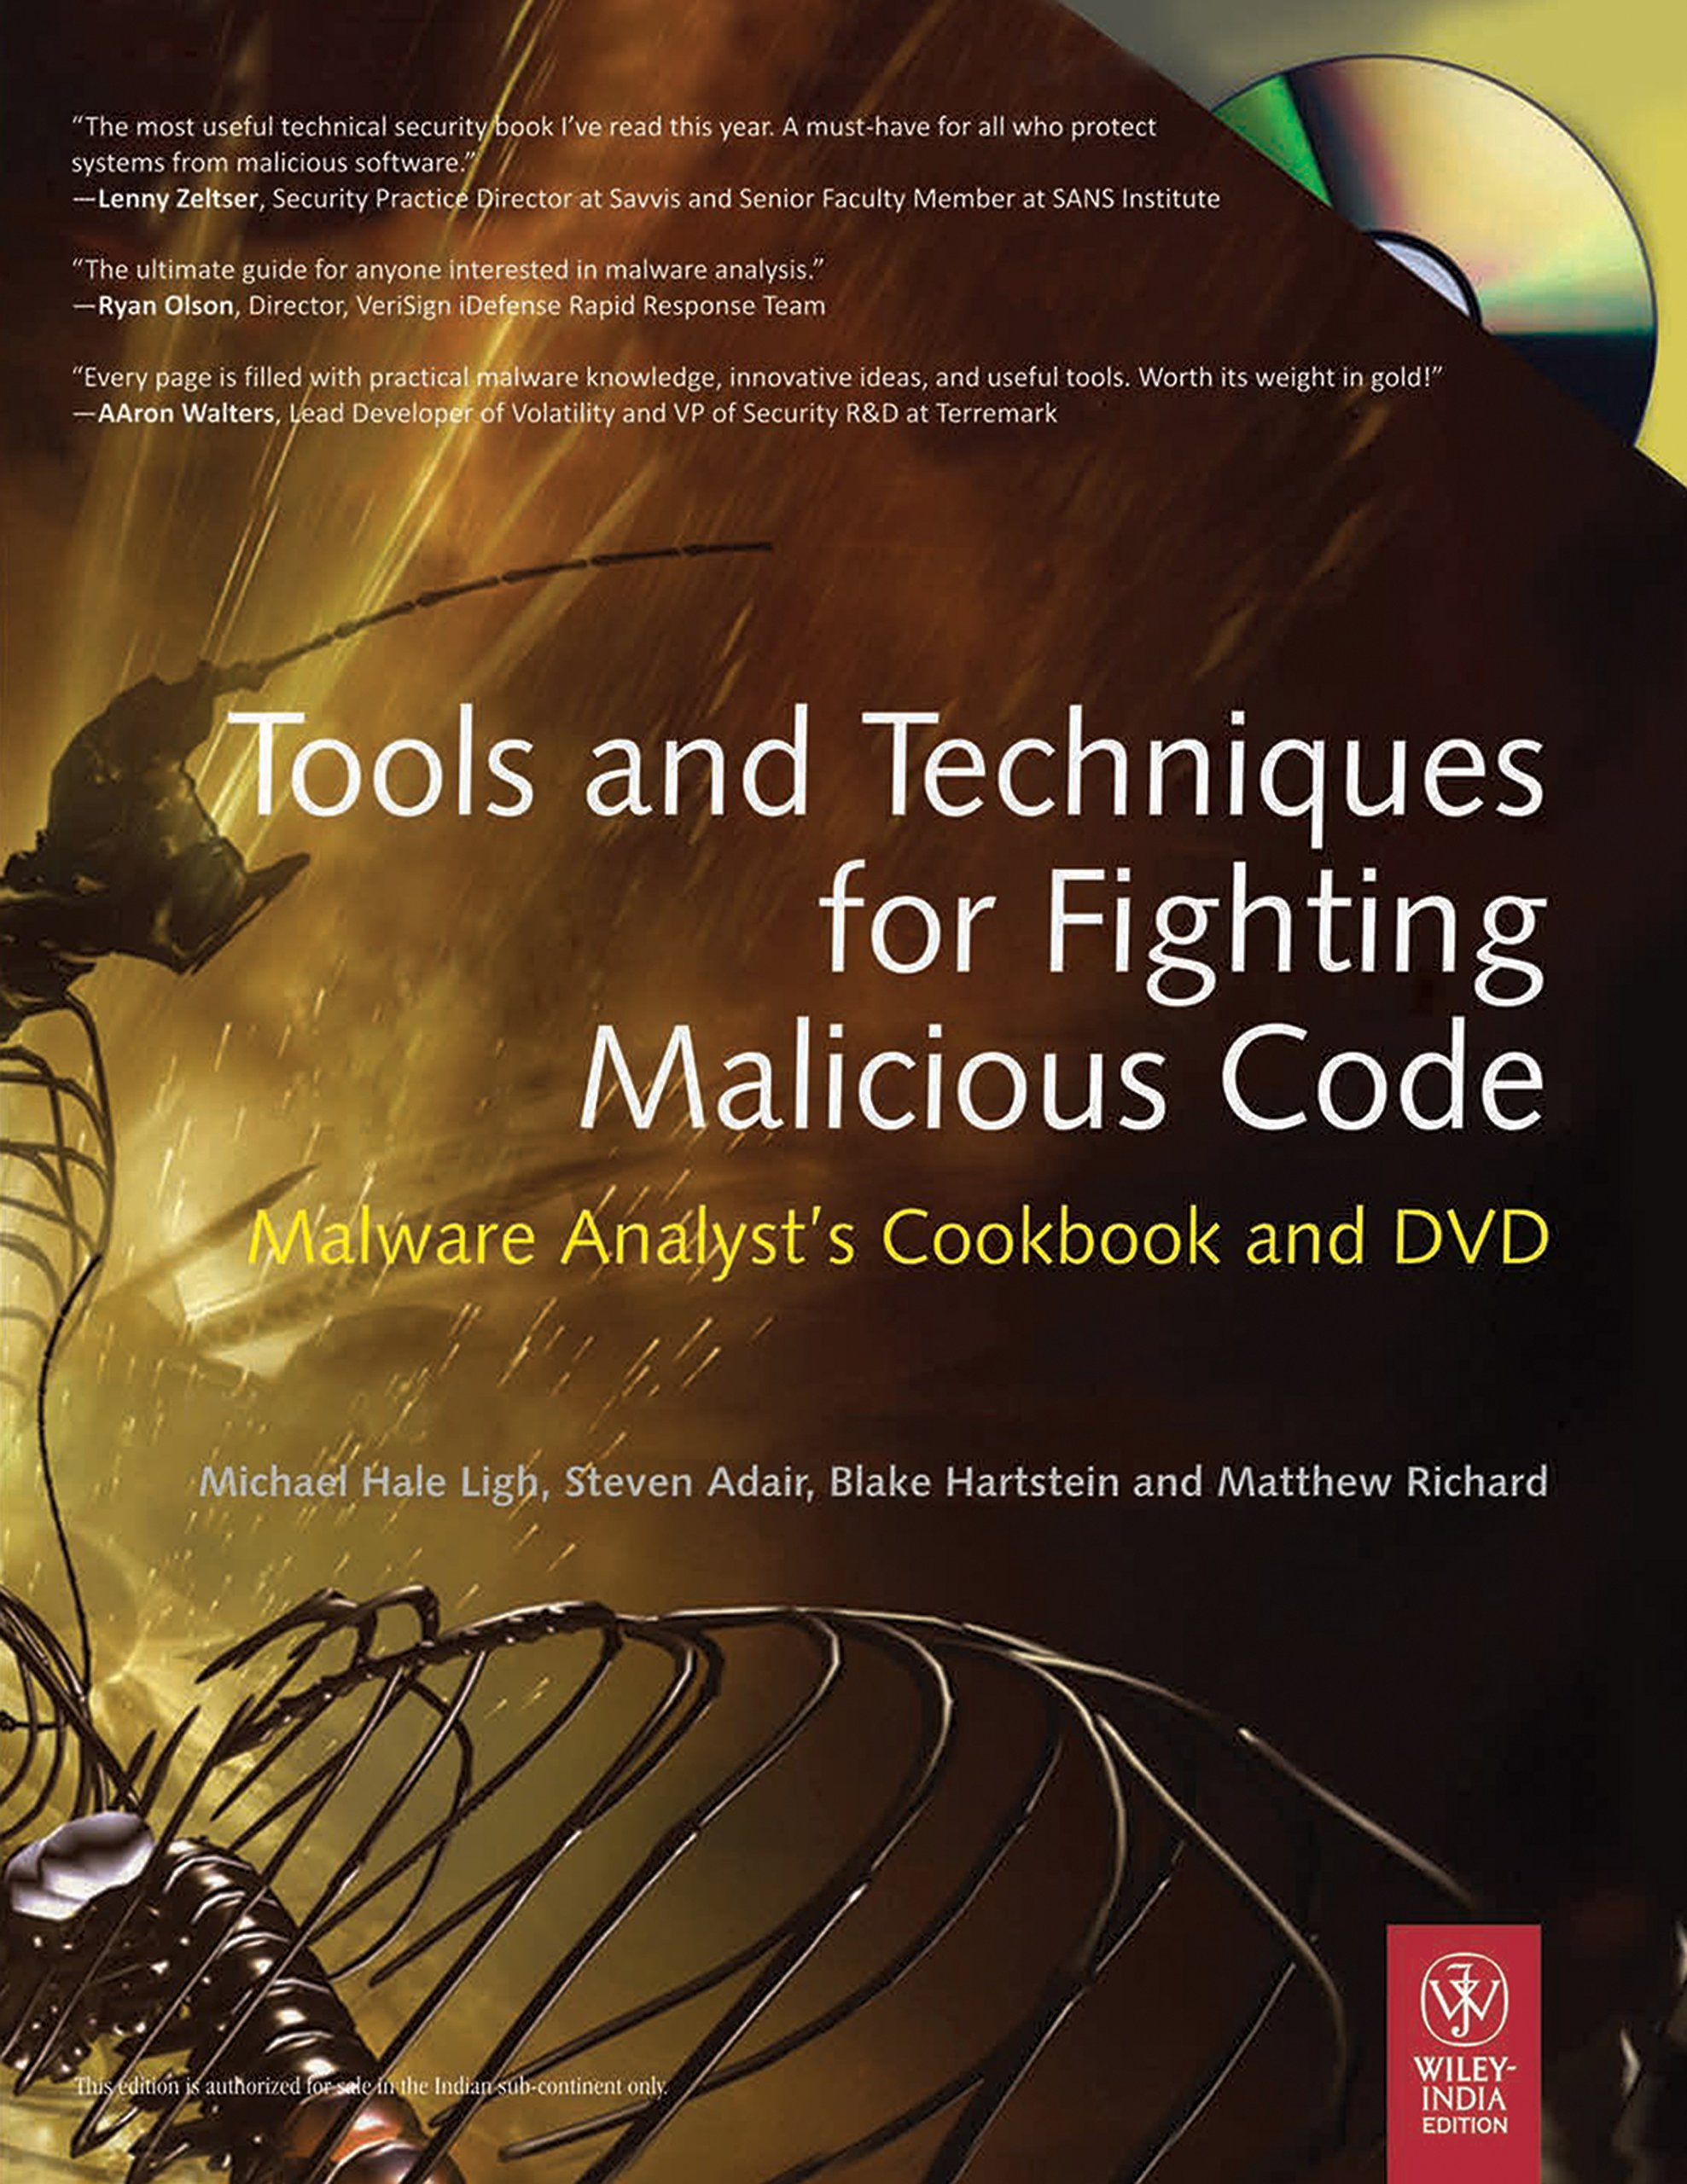 Buy Tools and Techniques for Fighting Malicious Code